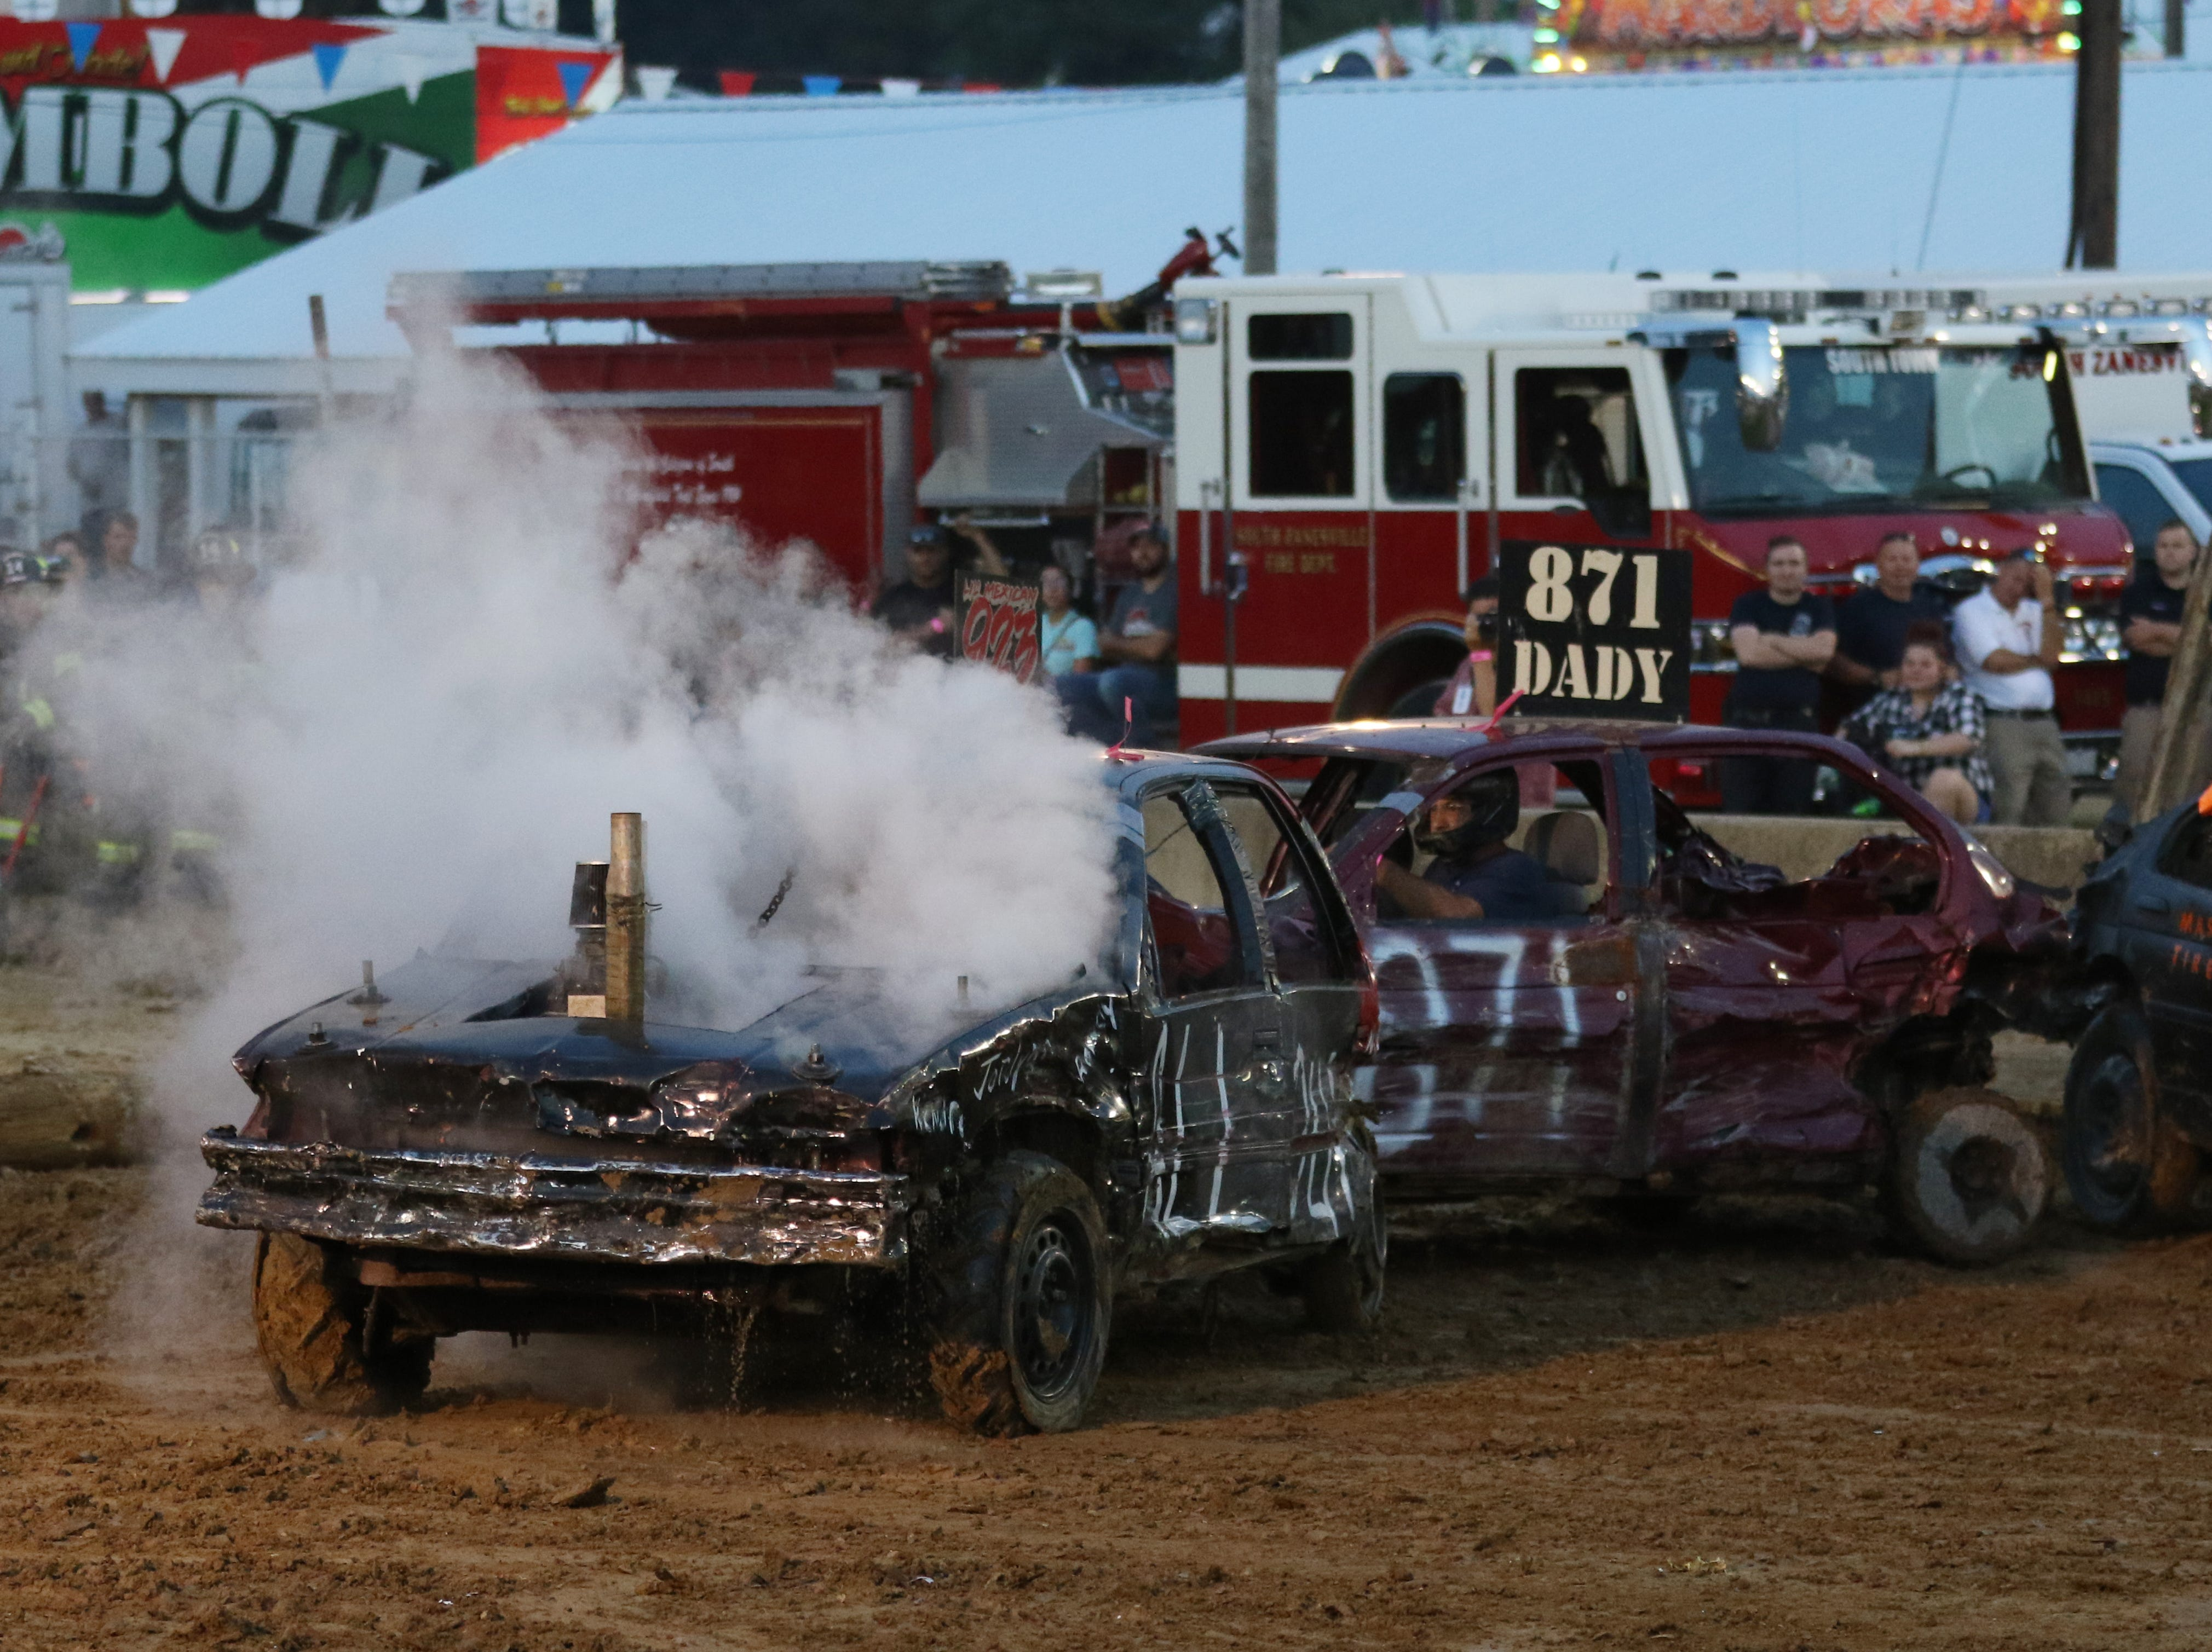 A car smokes during the Sarge and Sons Demolition Derby at the Muskingum County Fair on Tuesday.